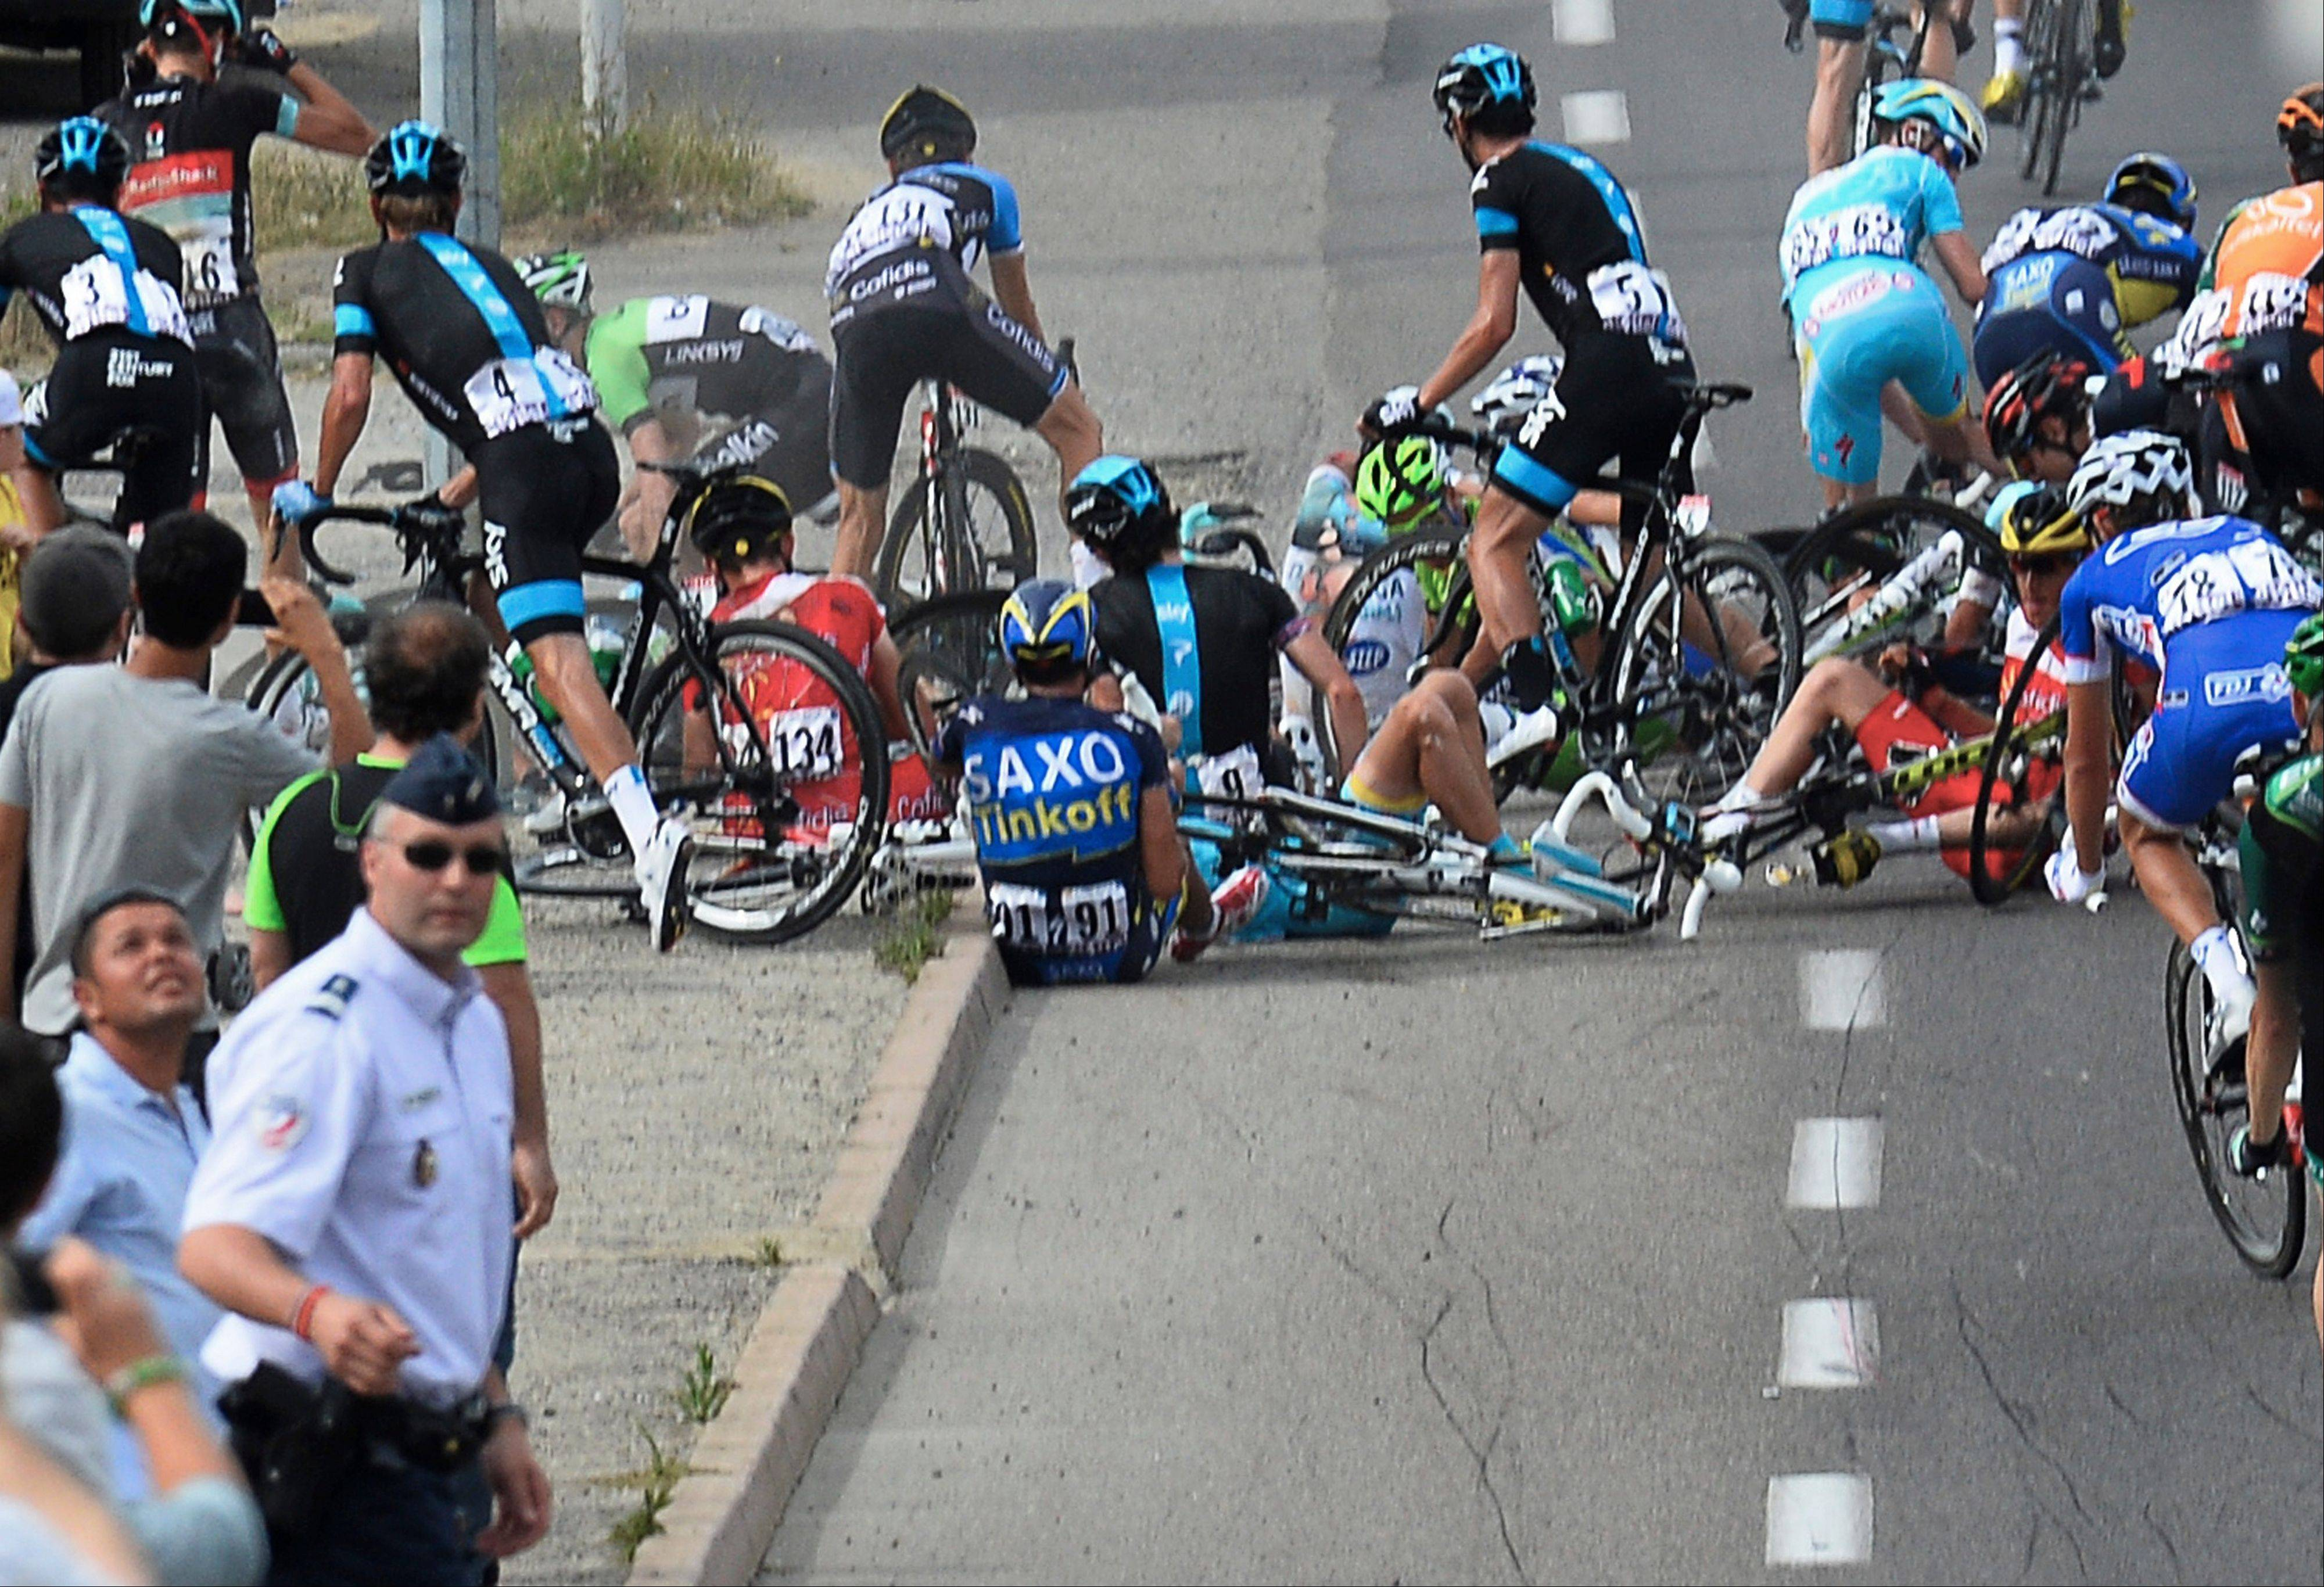 Alberto Contador of Spain, center with number 91, sits on the road after a group of riders crashed during the first stage of the Tour de France cycling race over 213 kilometers (133 miles) with start in Porto Vecchio and finish in Bastia, Corsica island, France, Saturday June 29, 2013.